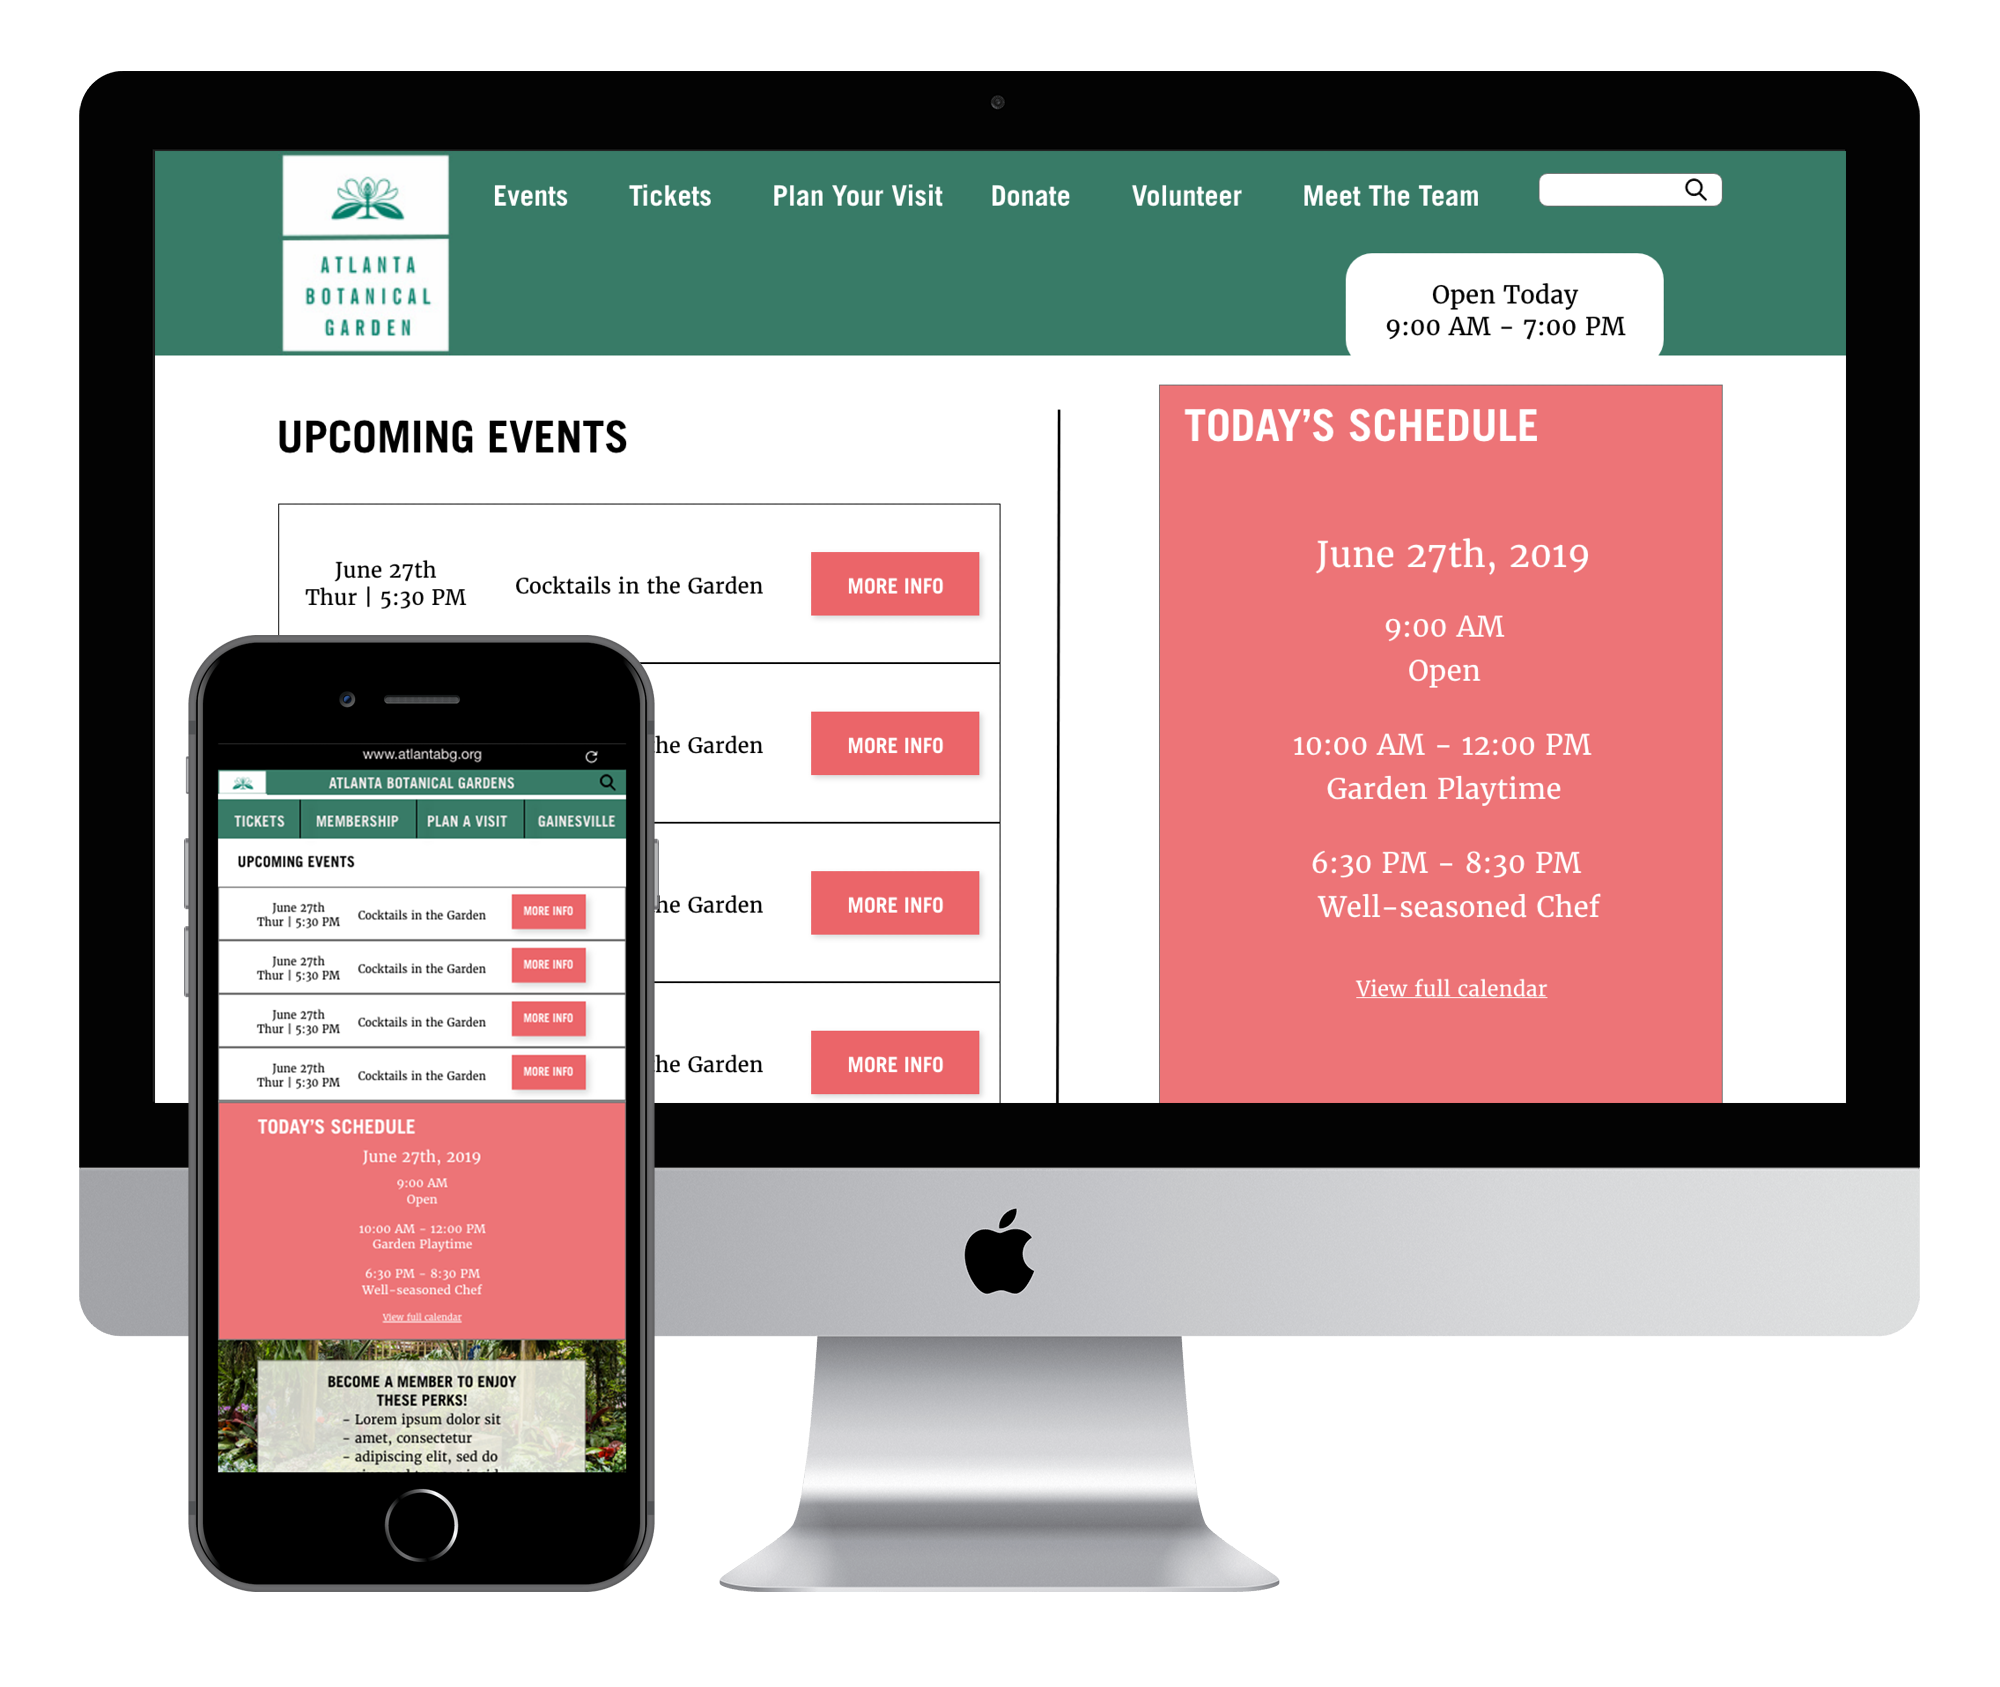 Atlanta Botanical Gardens Site Redesign - A project to redesign the website for the gardens and make the site mobile responsive.